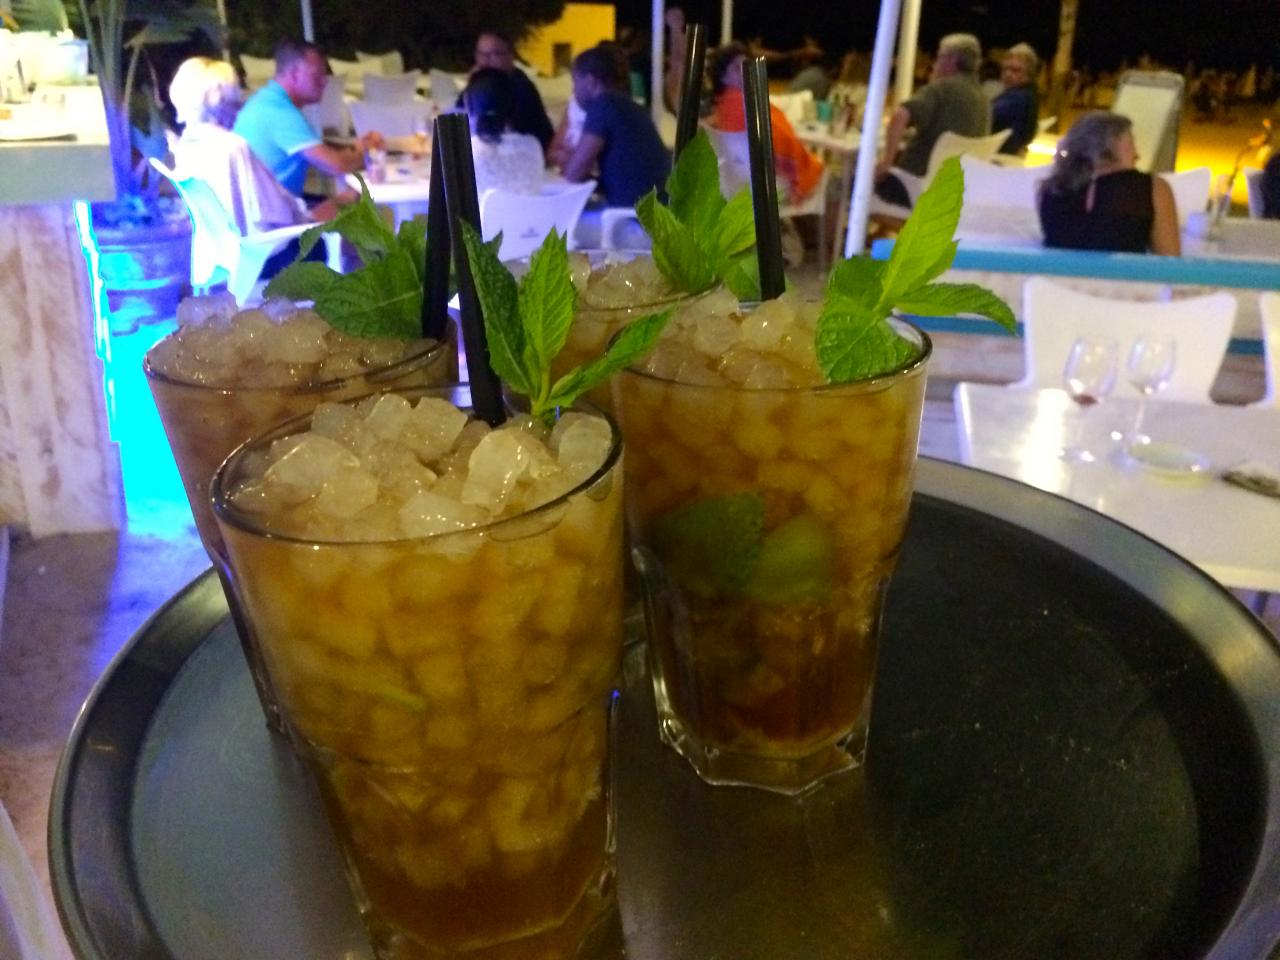 Lima mojito, the traditional